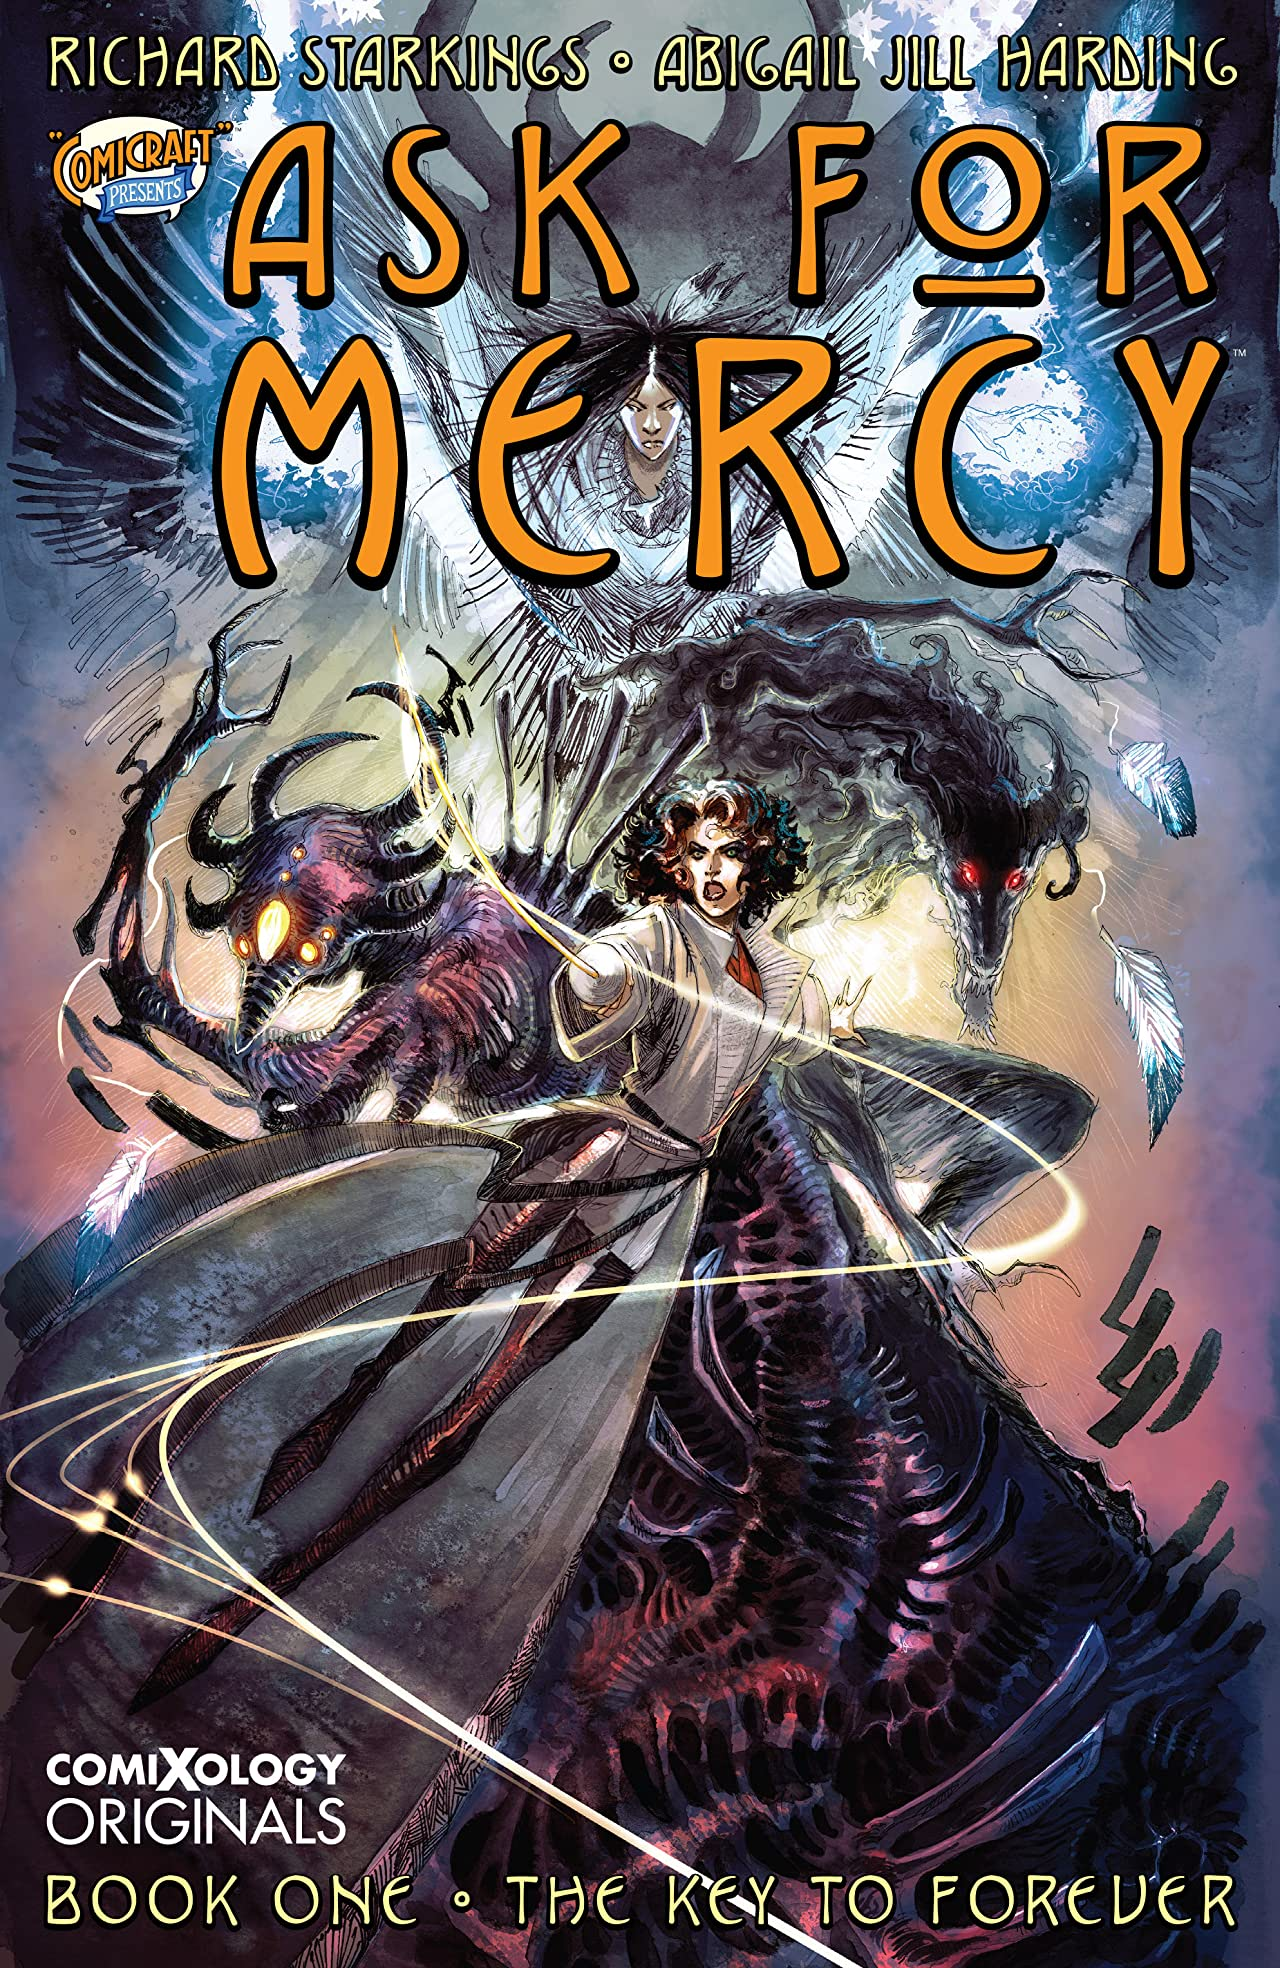 Ask For Mercy Season One (comiXology Originals): The Key To Forever